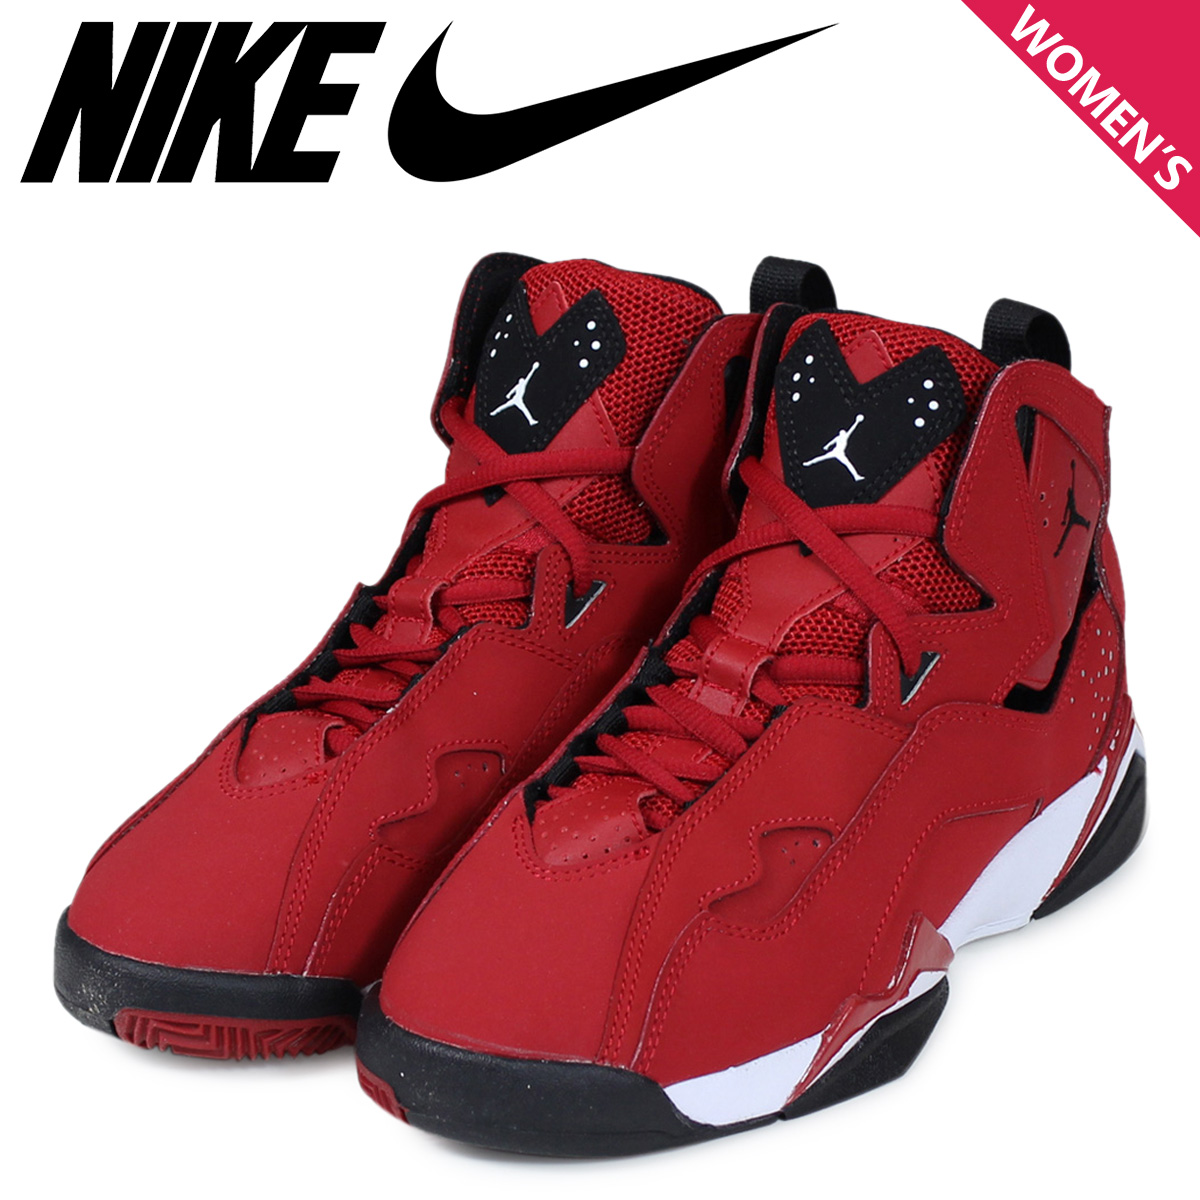 9ad453428478 ALLSPORTS  Nike NIKE Air Jordan Lady s sneakers JORDAN TRUE FLIGHT GS Air  Jordan 343